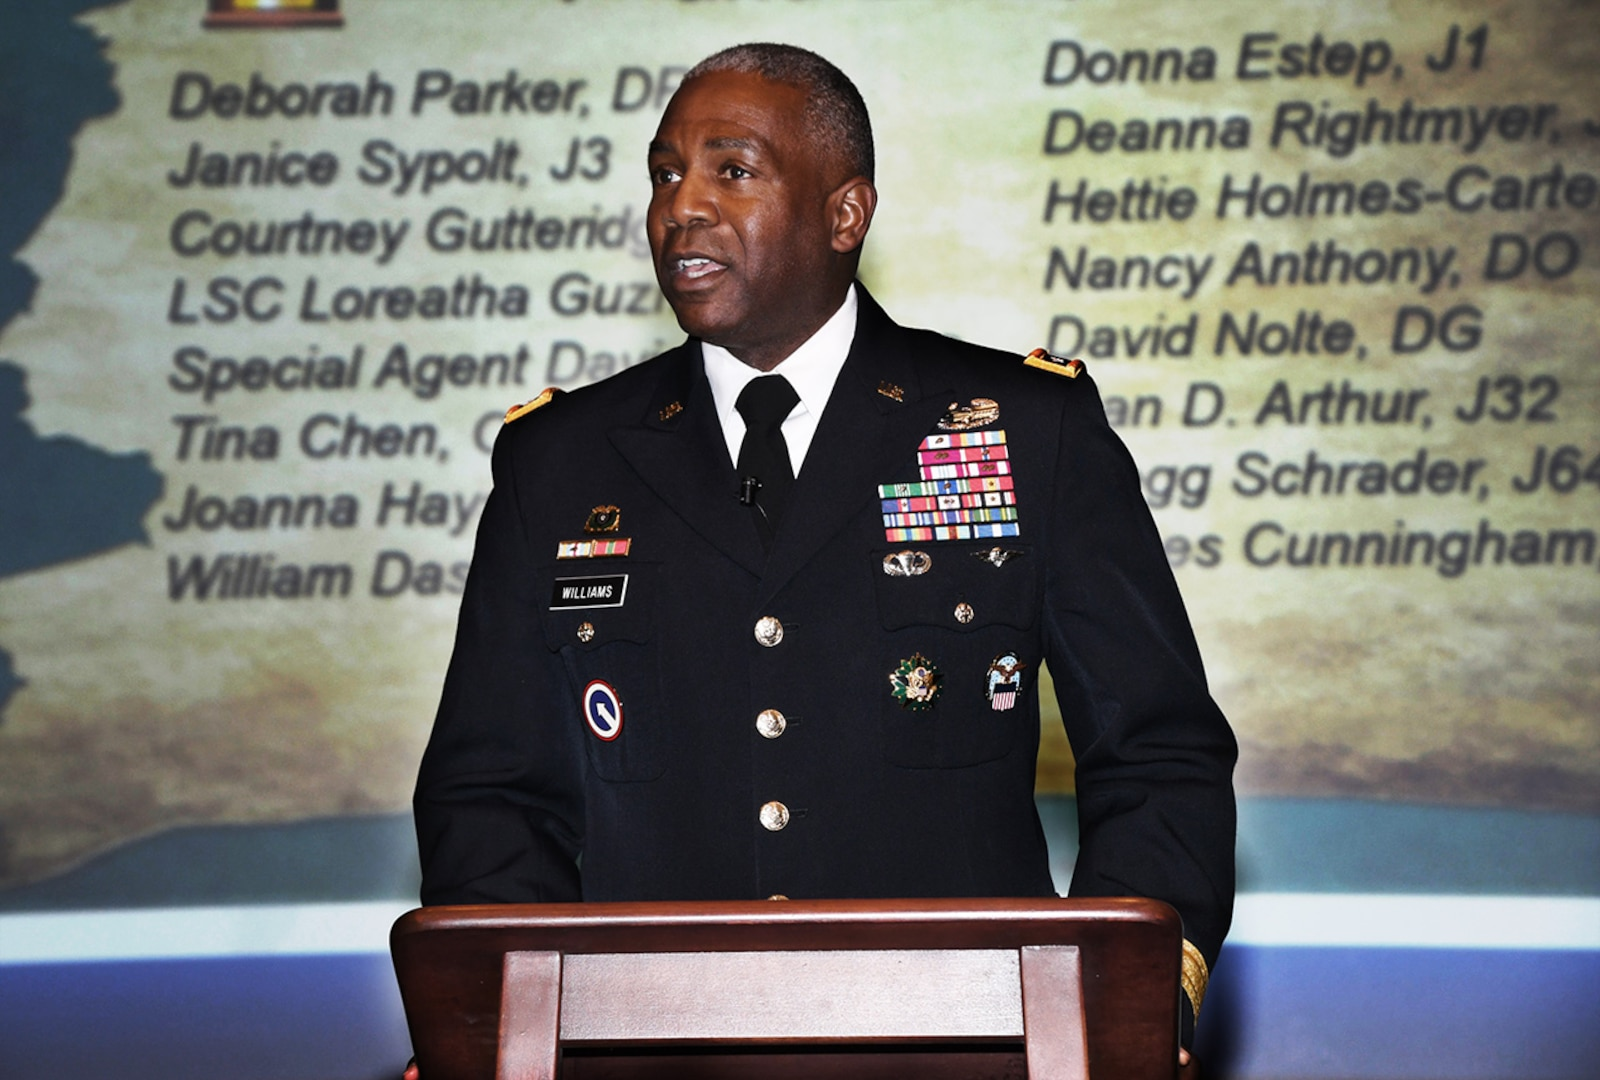 DLA Director Army Lt. Gen. Darrell Williams describes employees' 'indispensable' support to warfighters during a town hall at McNamara Headquarters Complex March 7.